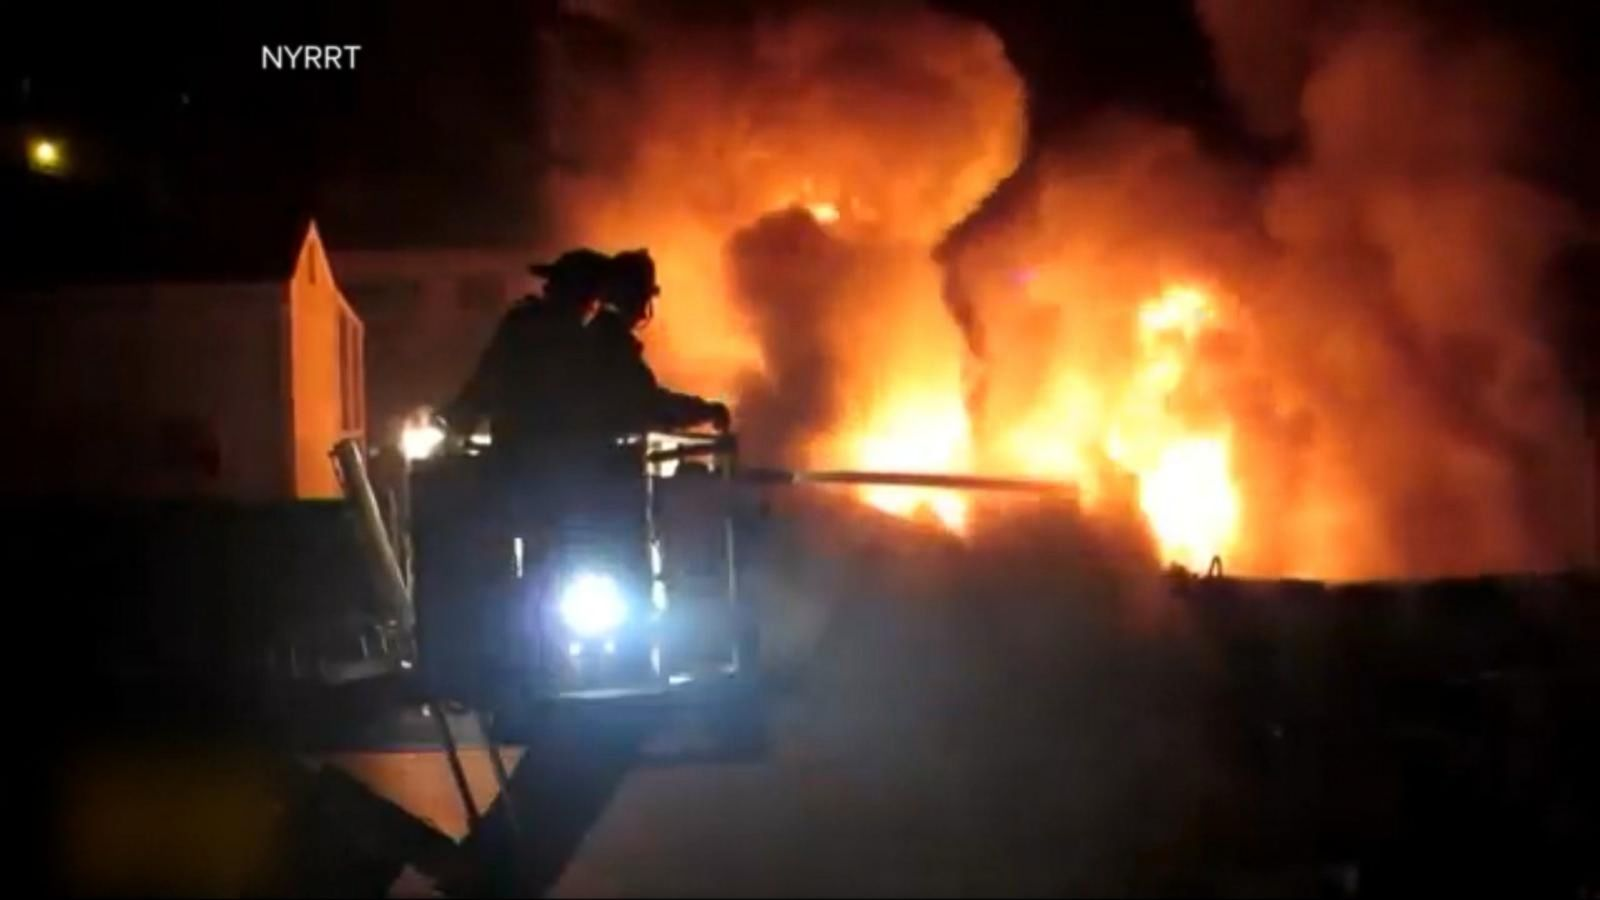 VIDEO: NYC's Bravest Sprang Into Action During a Massive Blaze That Took 5 Hours to Bring Under Control